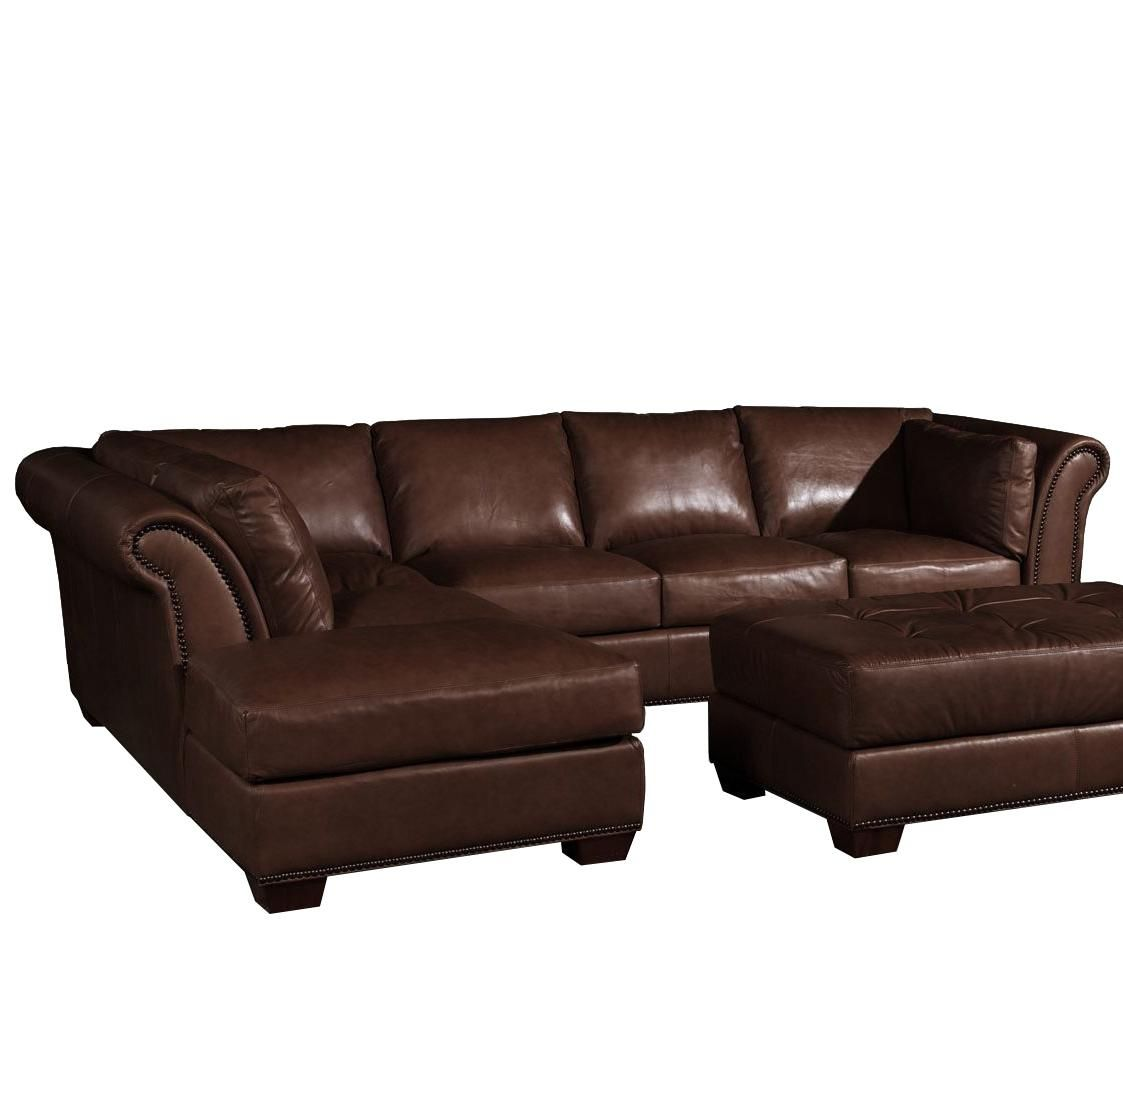 Traditional Leather Sectional Sofas What Is The Most Comfortable Sofa Bed Uk Usa Premium 8651